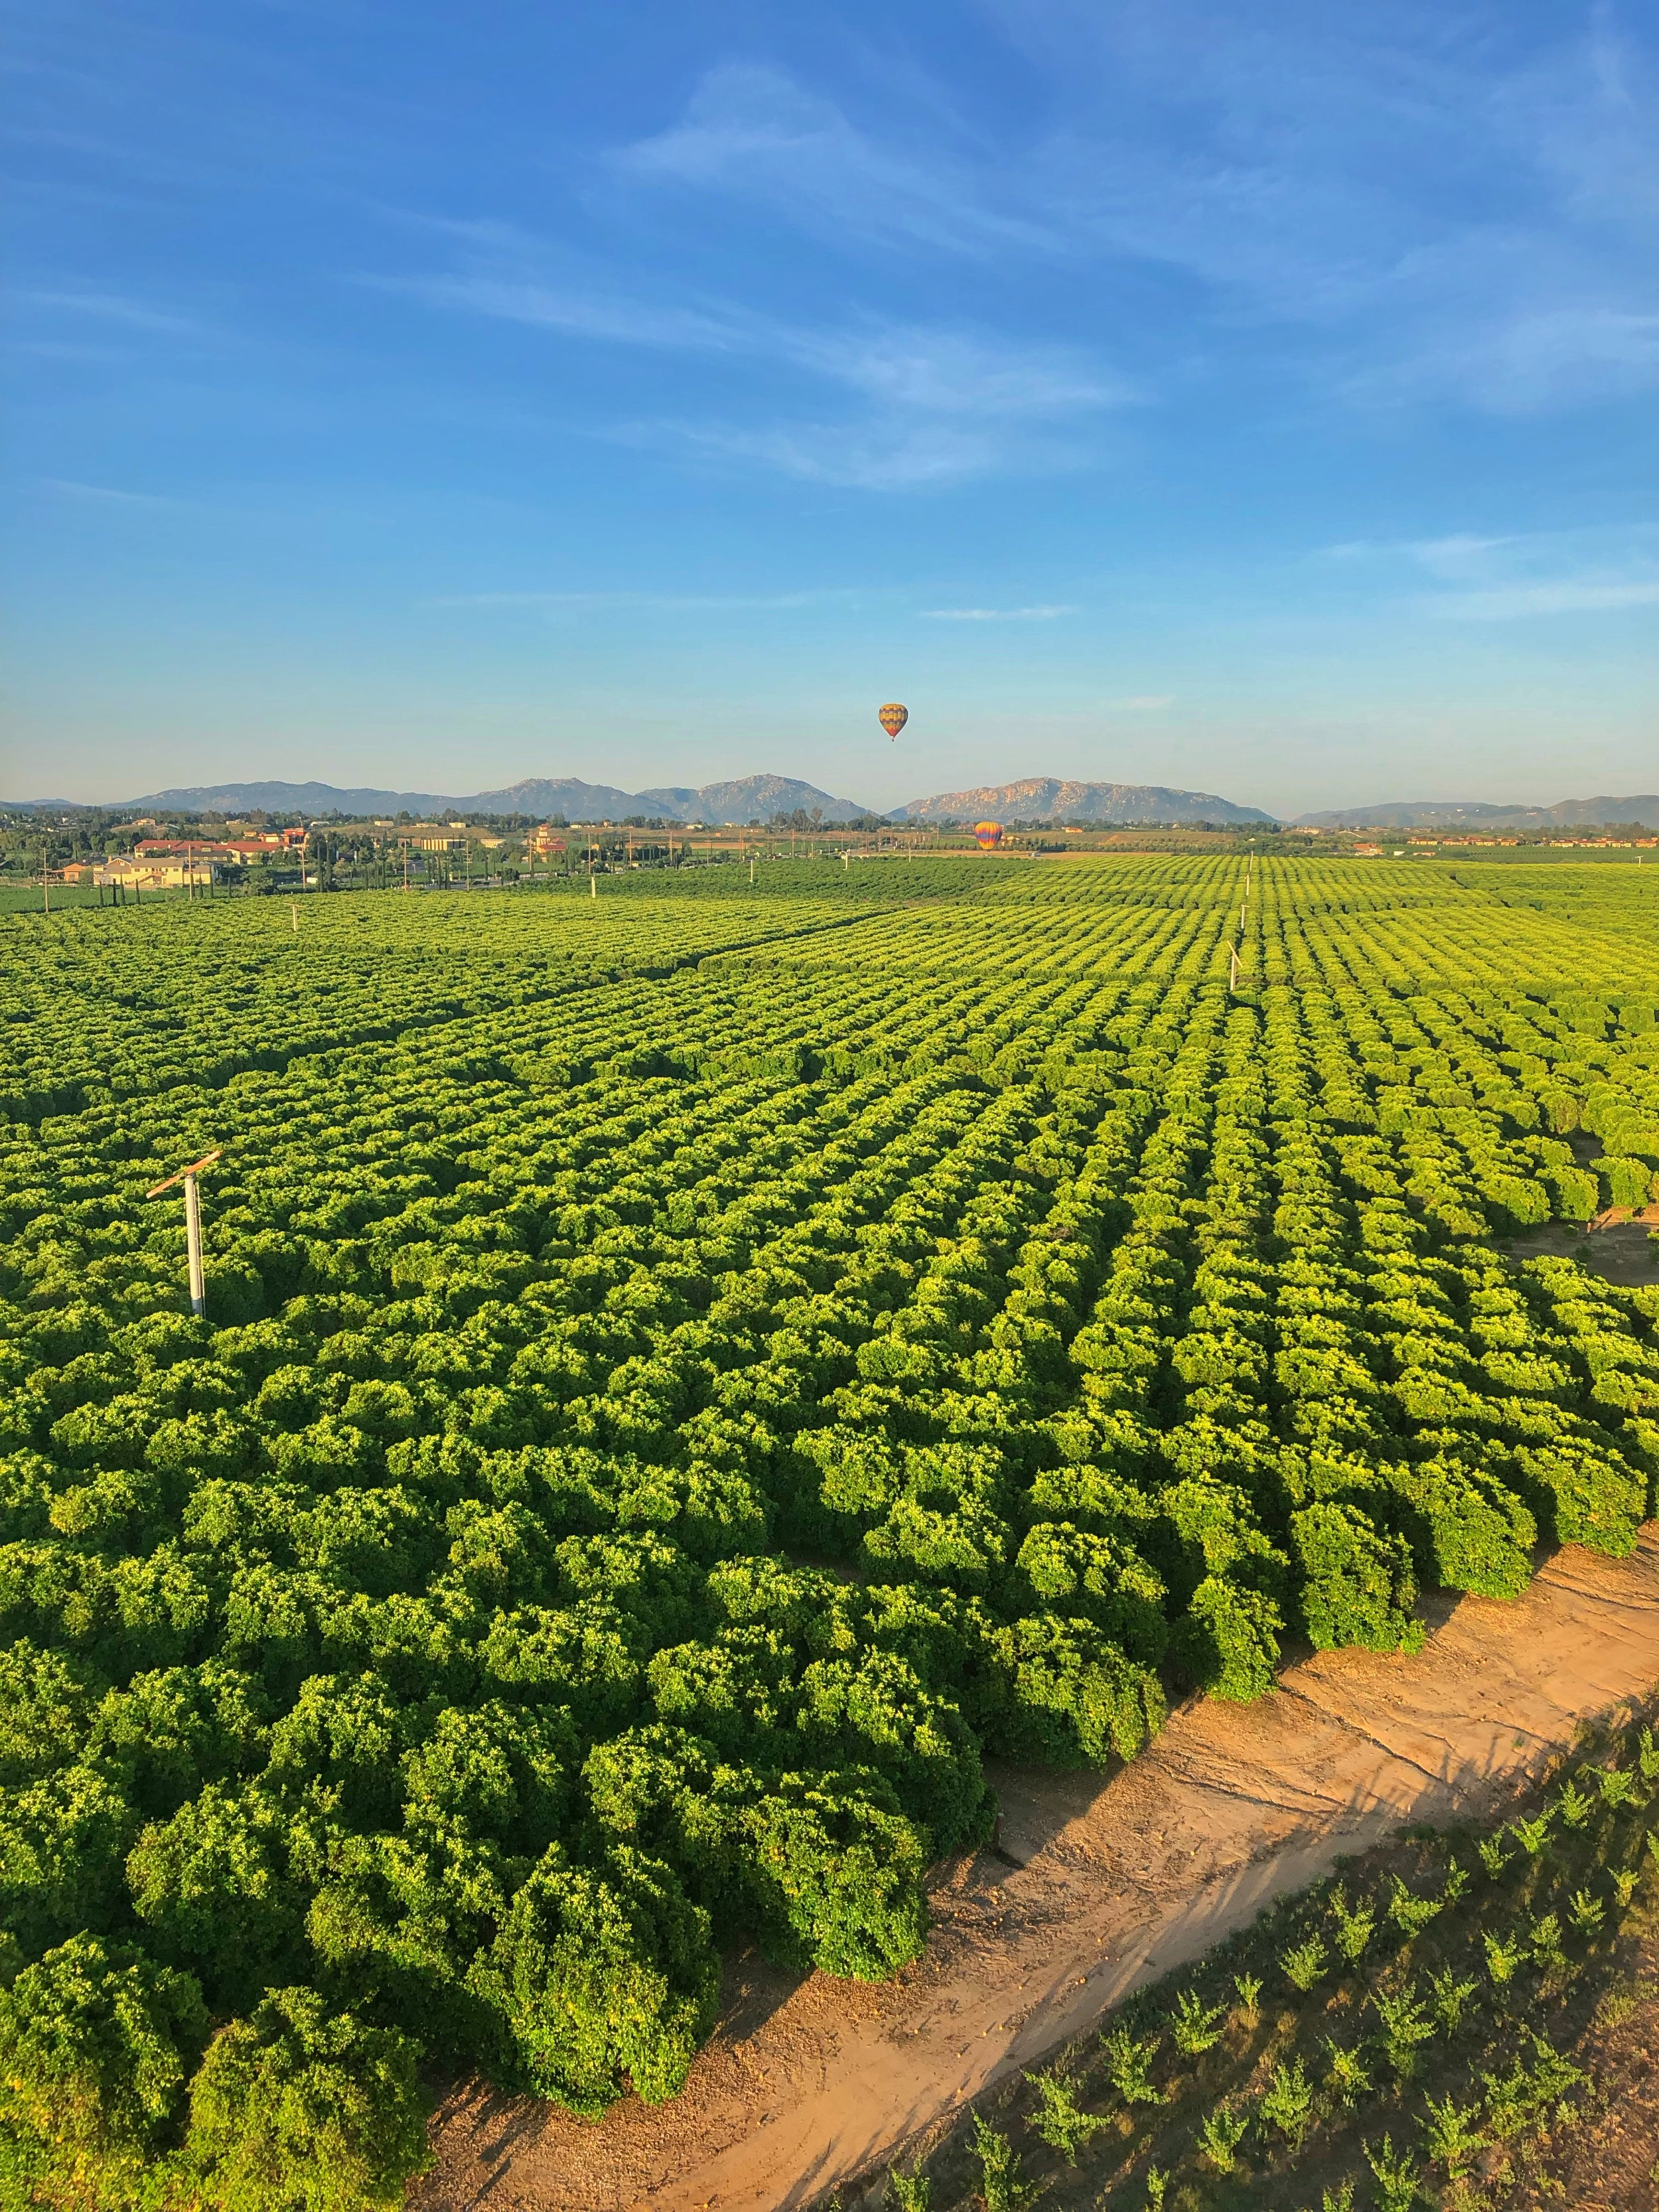 Hot Air Balloon Ride. Monte De Oro Winery, Temecula, California.